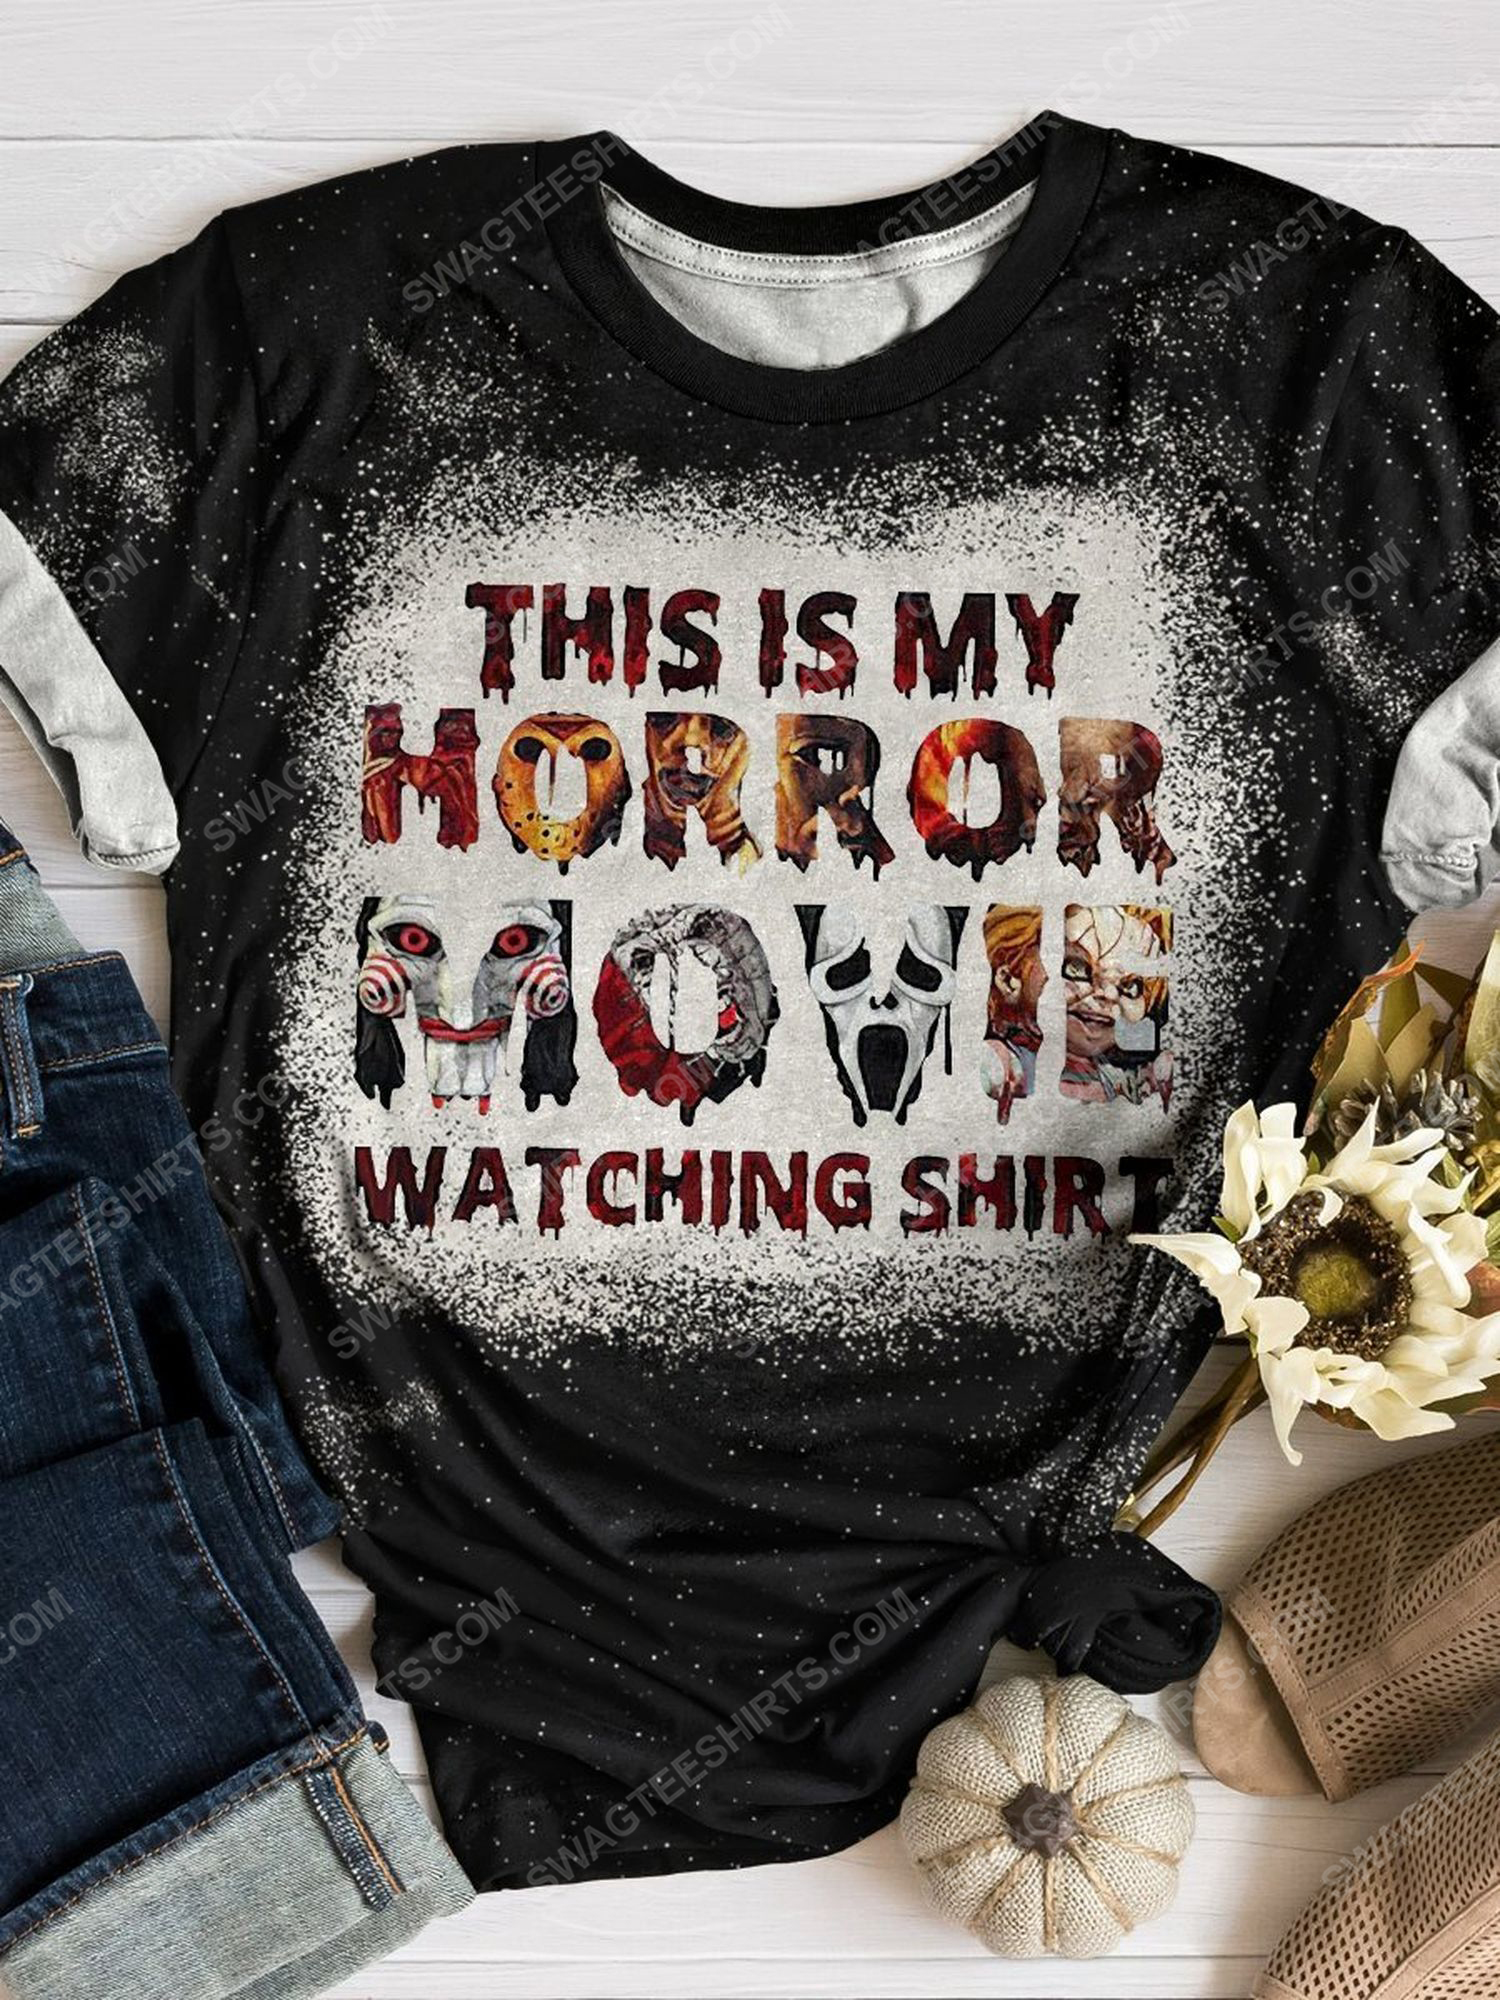 This is my horror movie watching shirt bleached shirt 1 - Copy